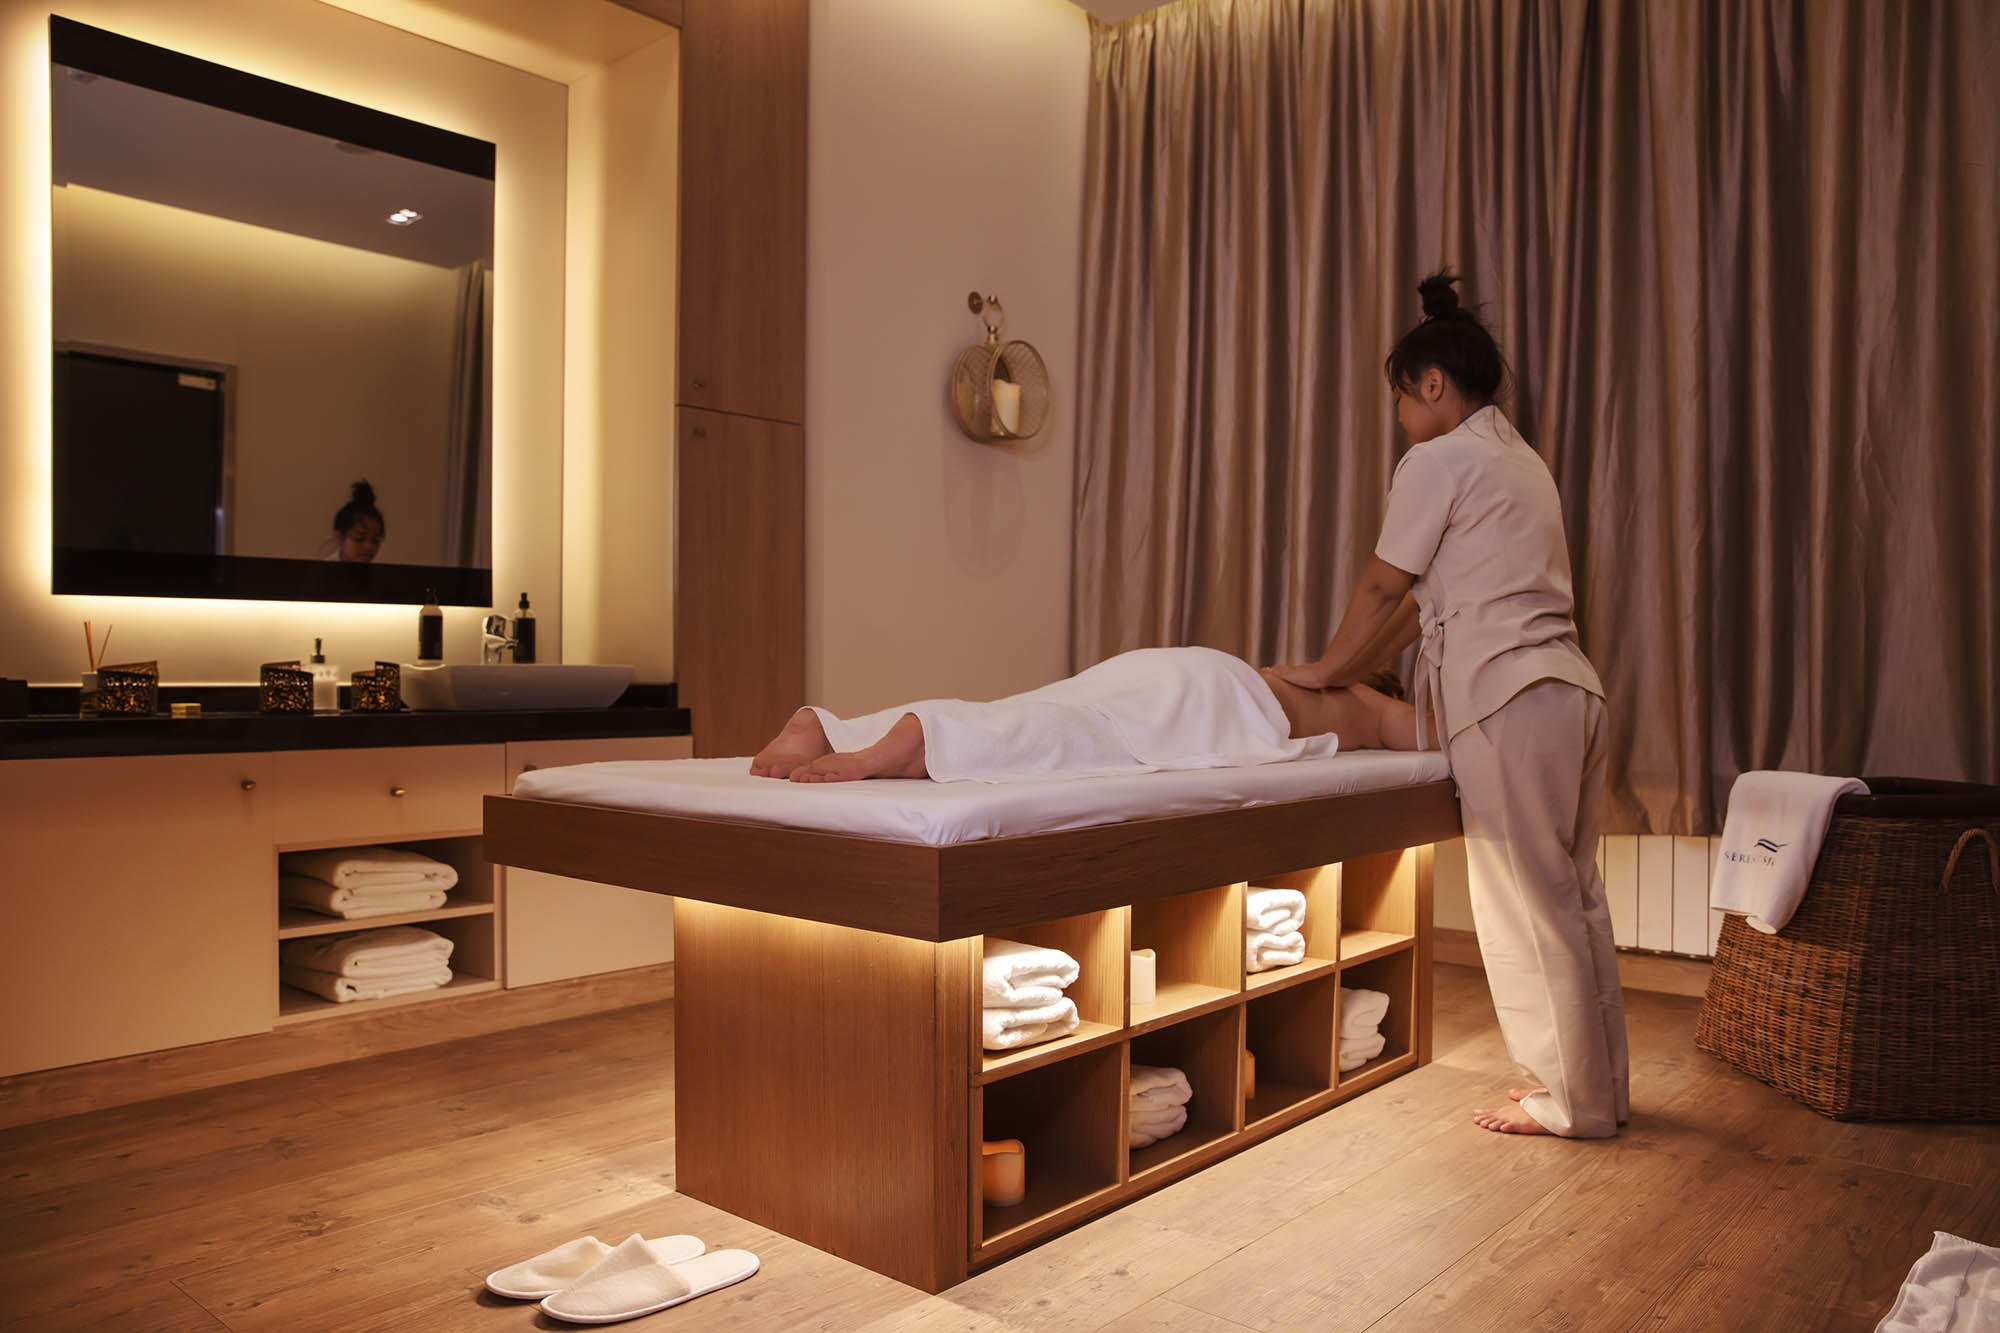 Spa Treatment at Mist Hotel